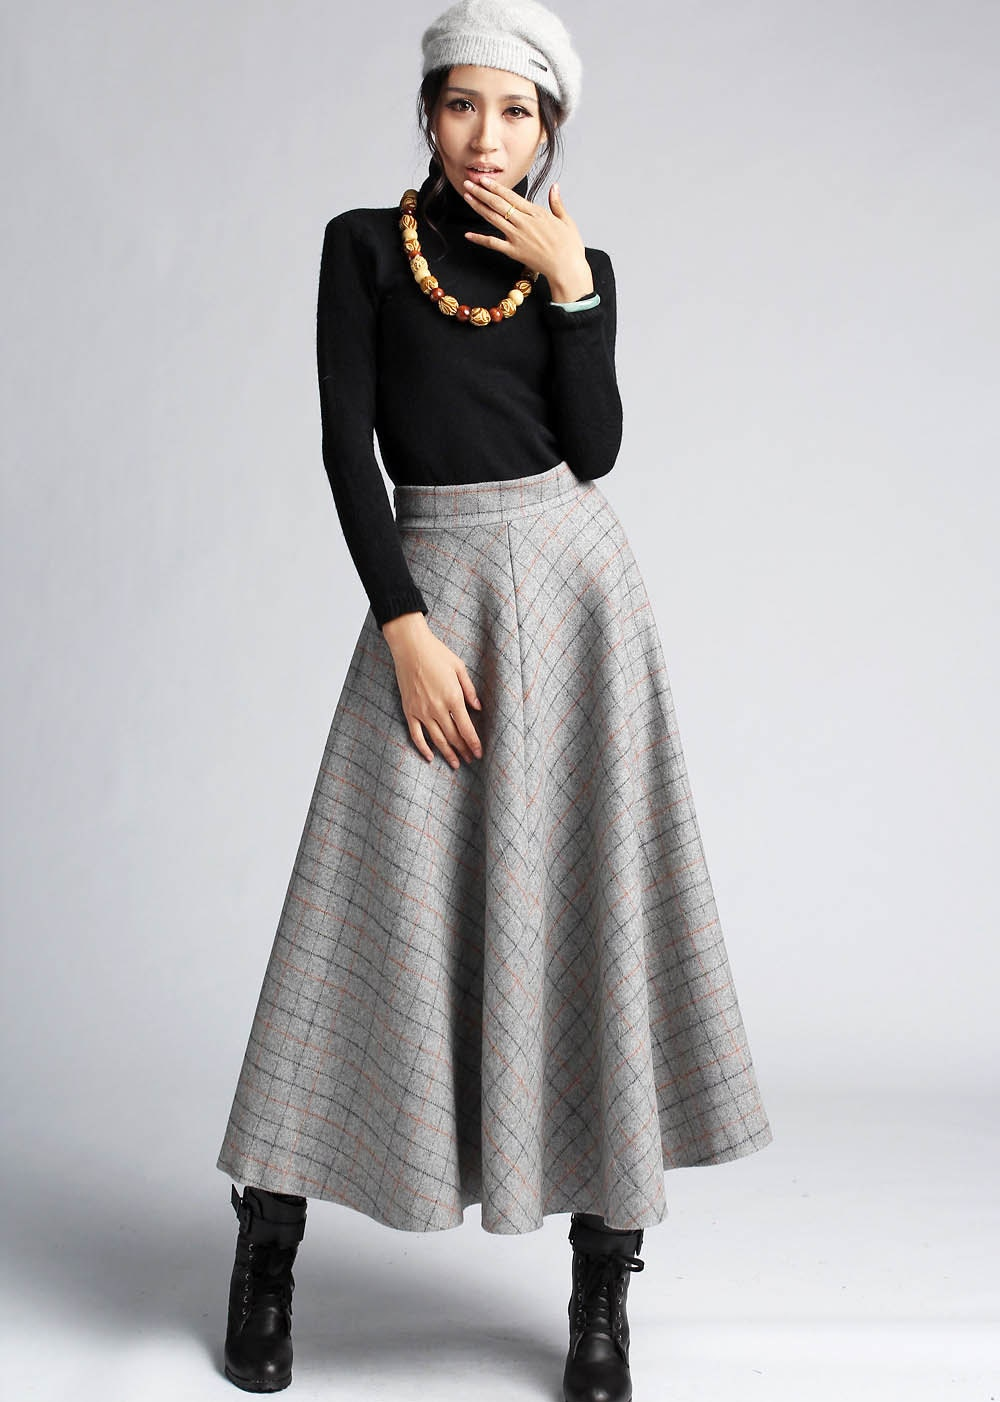 gray plaid wool skirt maxi classic style winter by